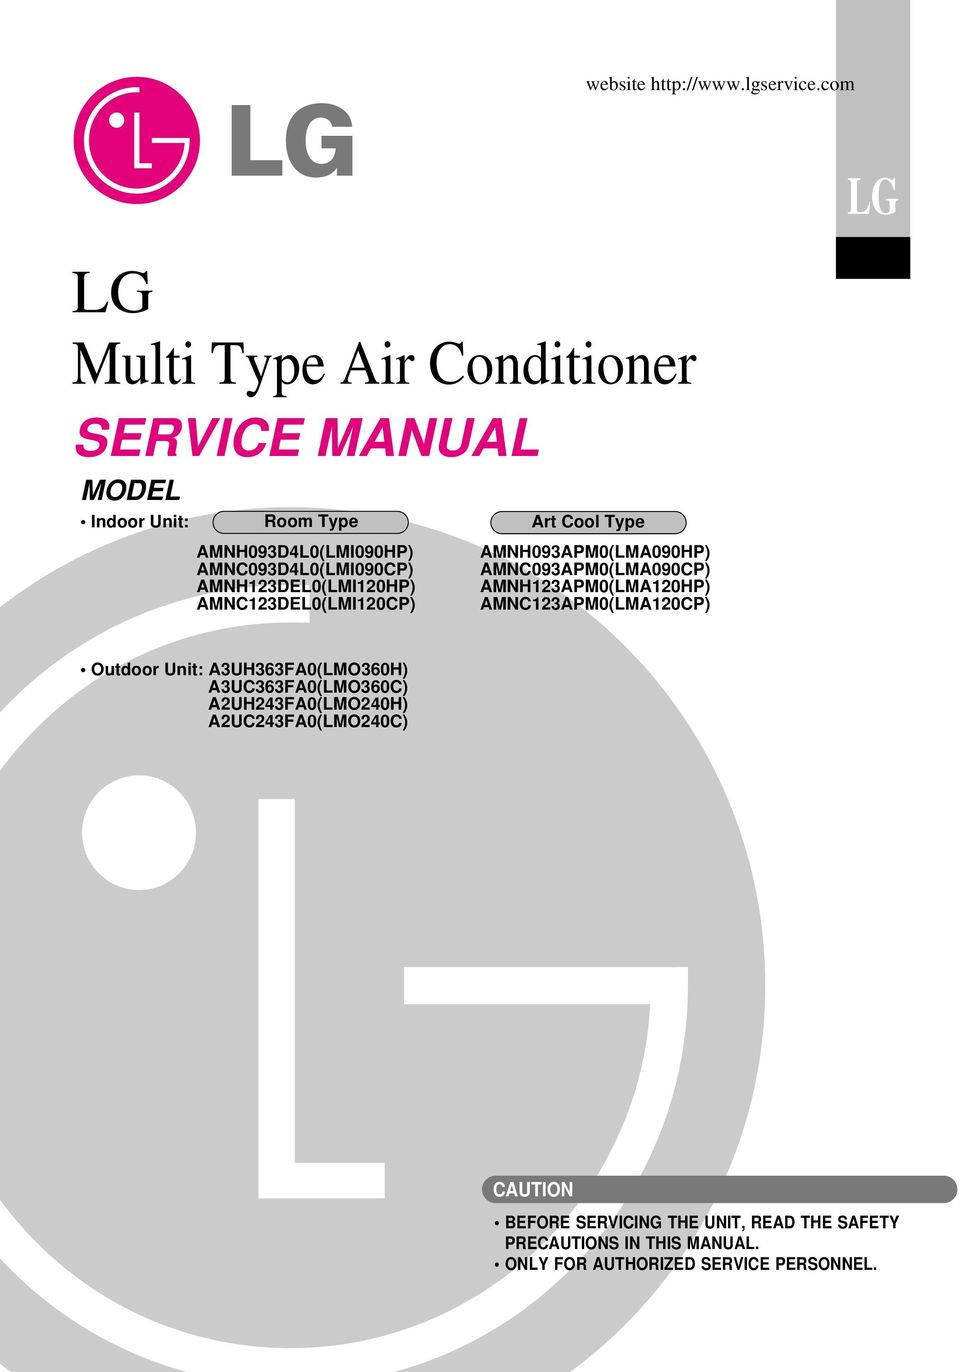 Lg Multi Type Air Conditioner Pdf Free Download